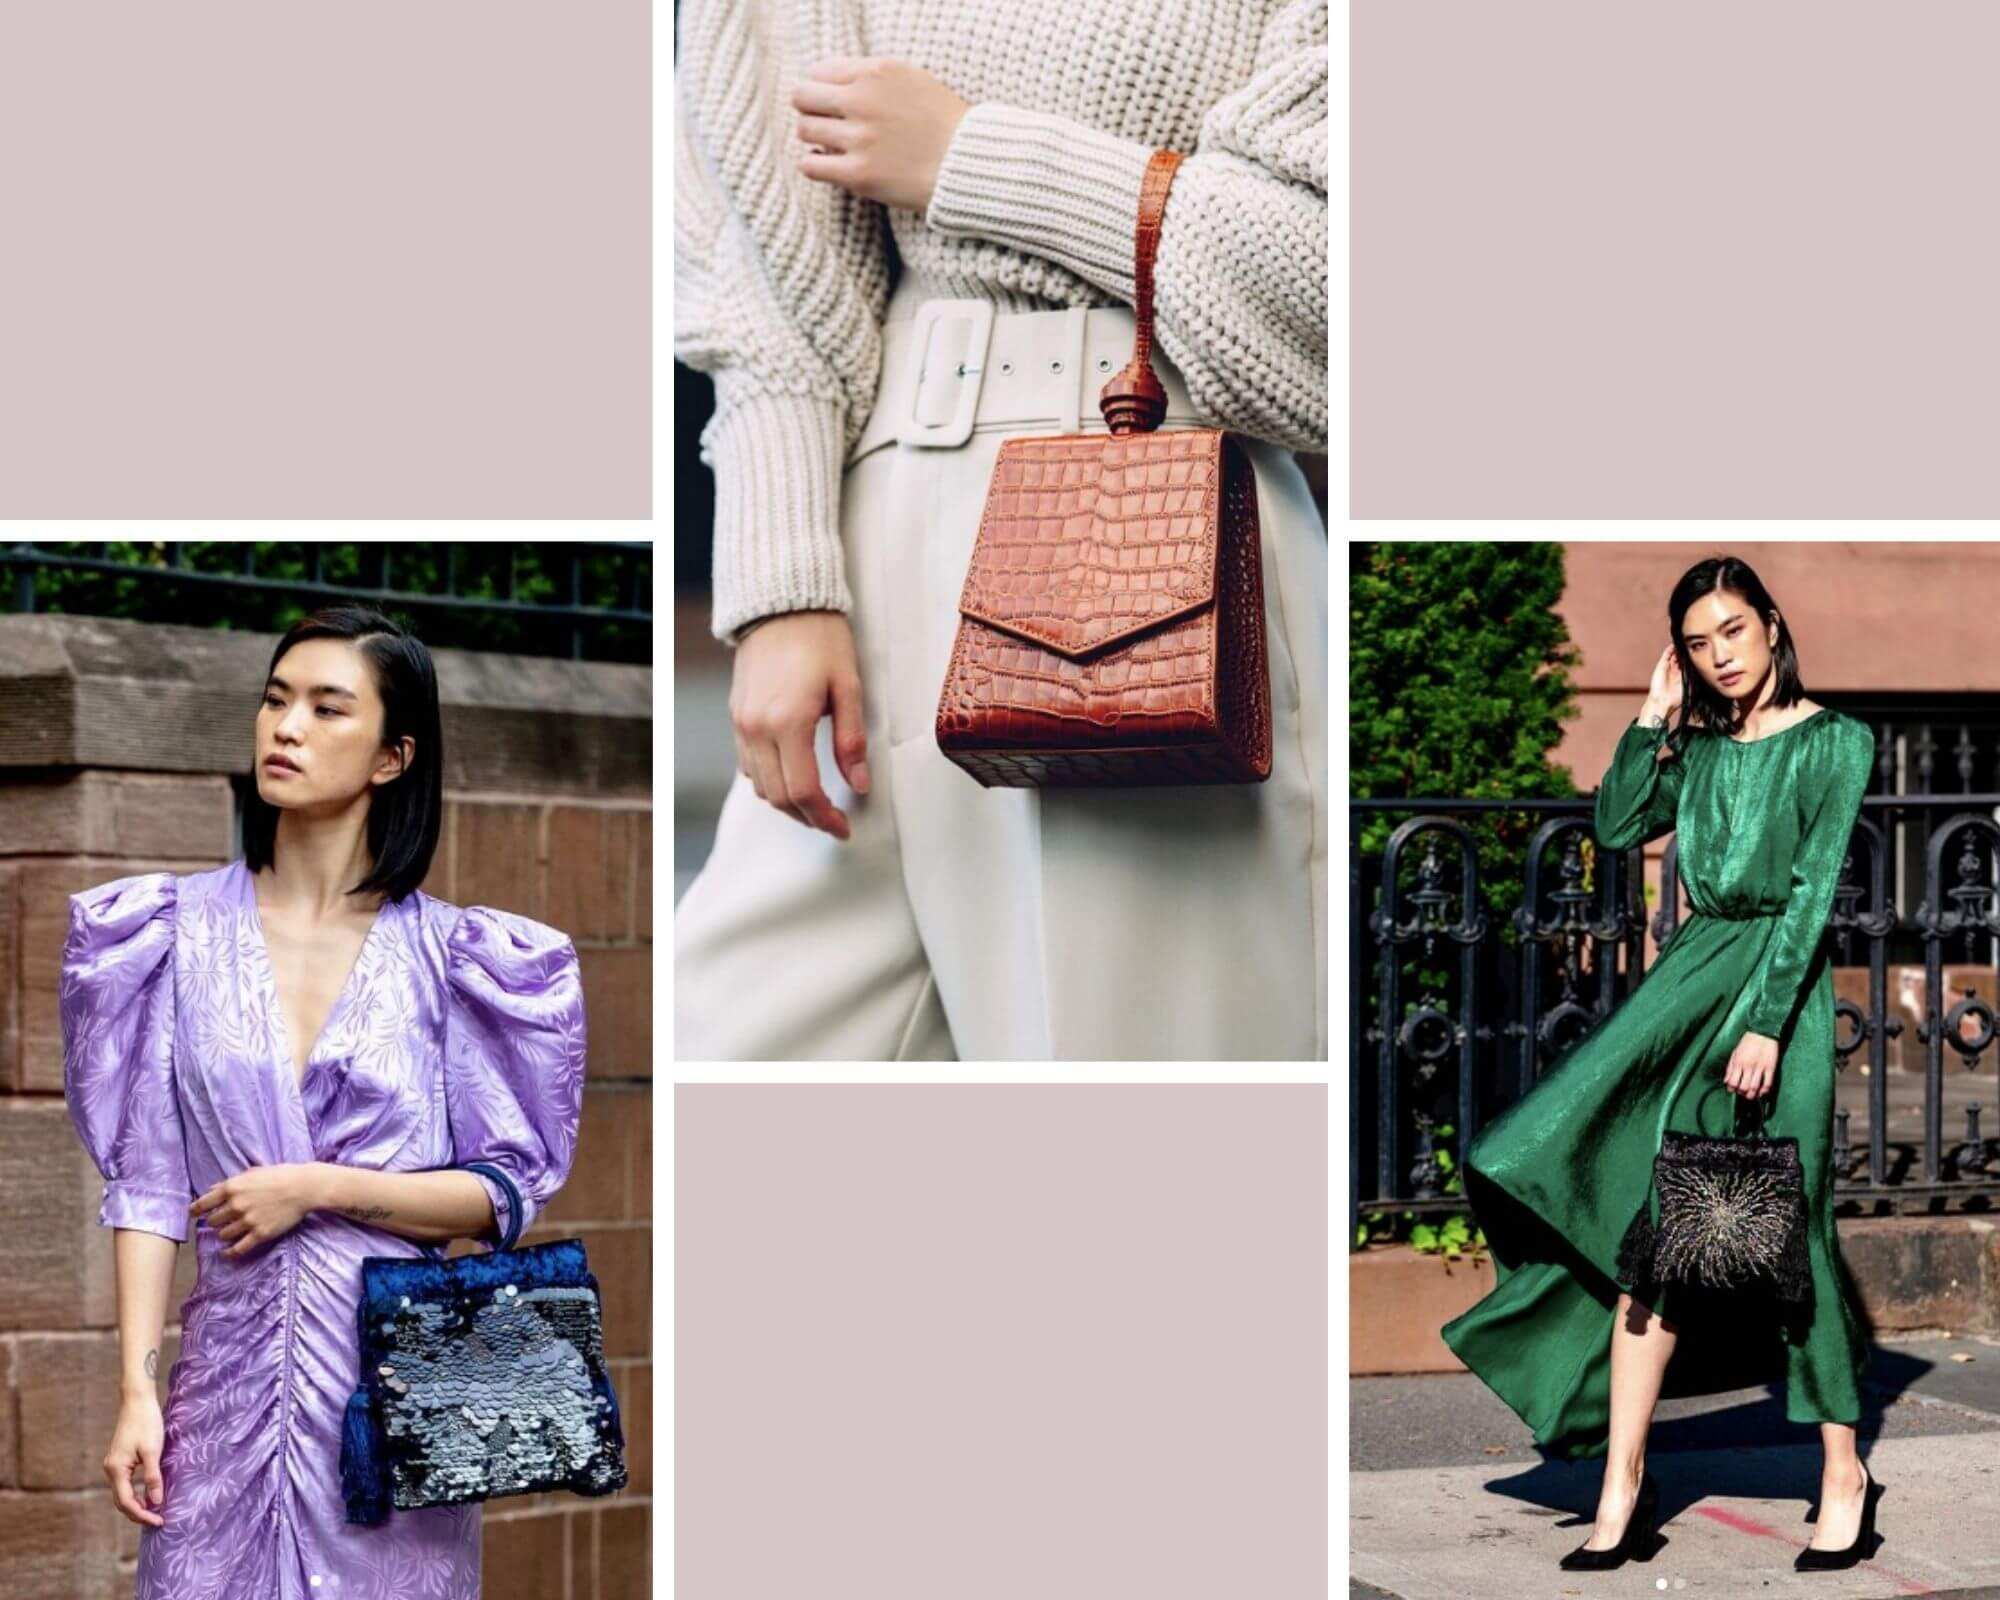 13 Filipino Fashion and Beauty Brands You Need to Know - Rafe New York